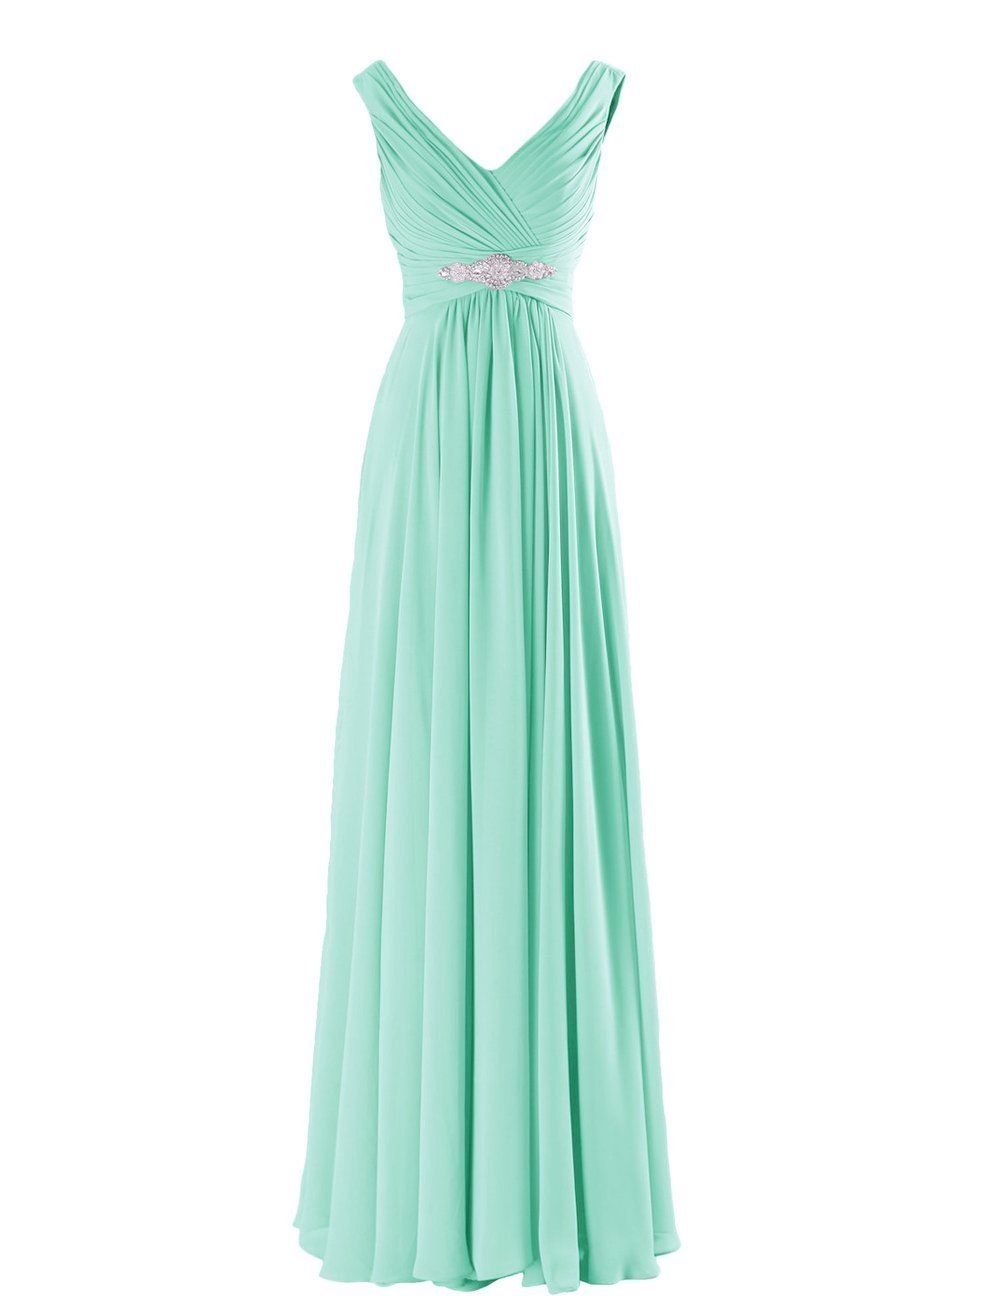 Henley Mint Peppermint Pale Green Grecian Chiffon long bridesmaid wedding bridal evening prom cruise ballgown formal occasion dress uk Pastel